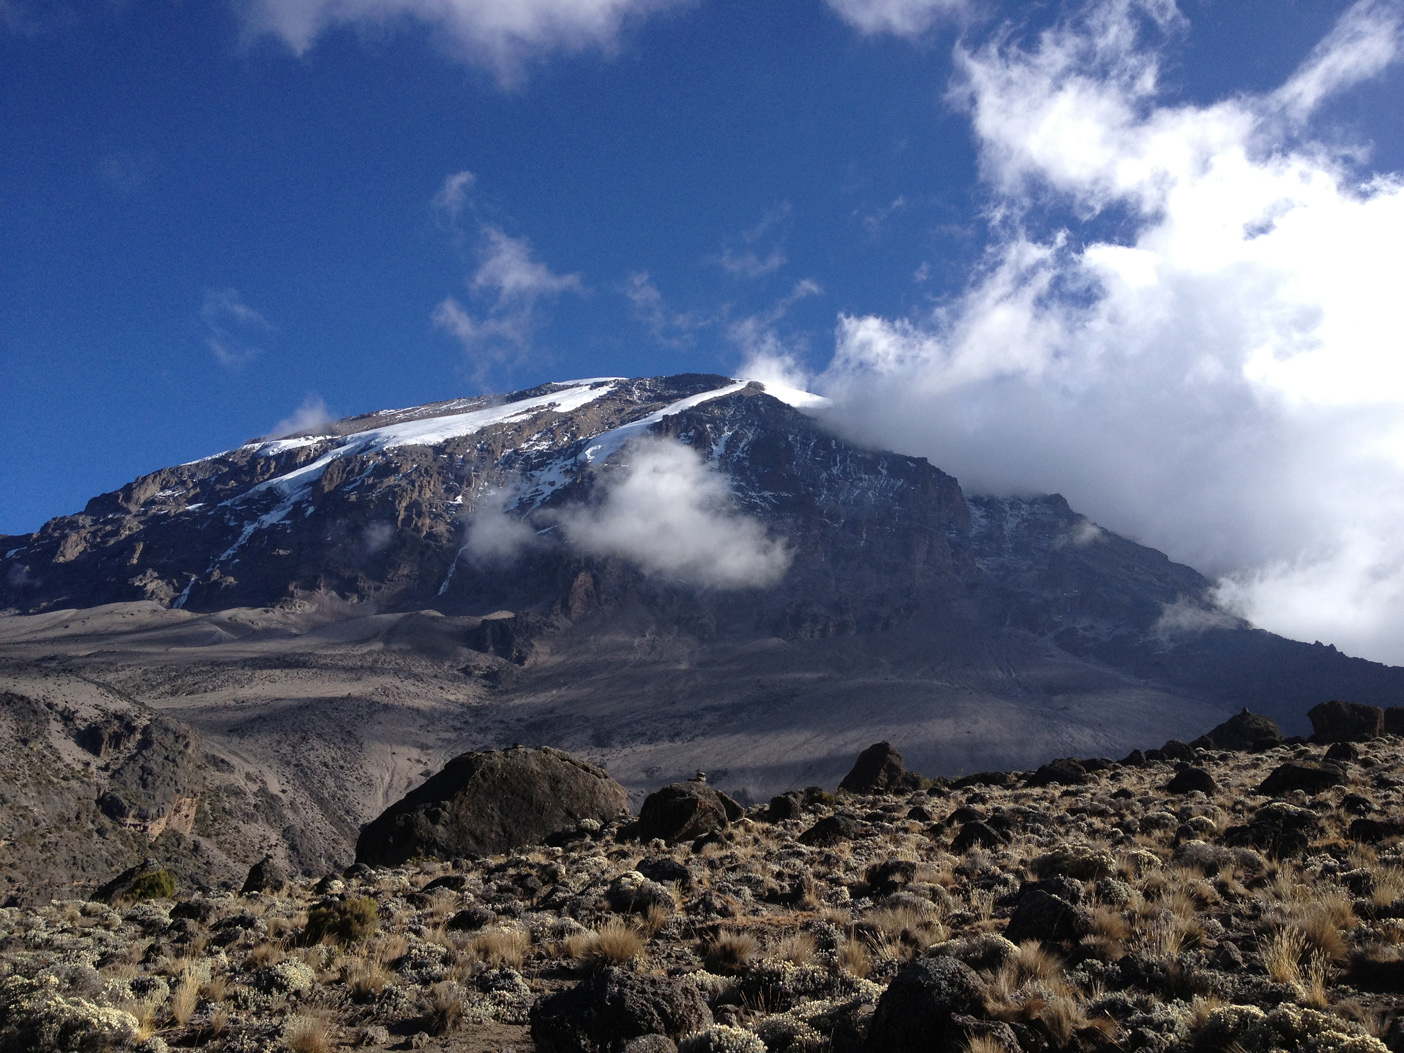 View of Mt. Kilimanjaro from Karanga Camp